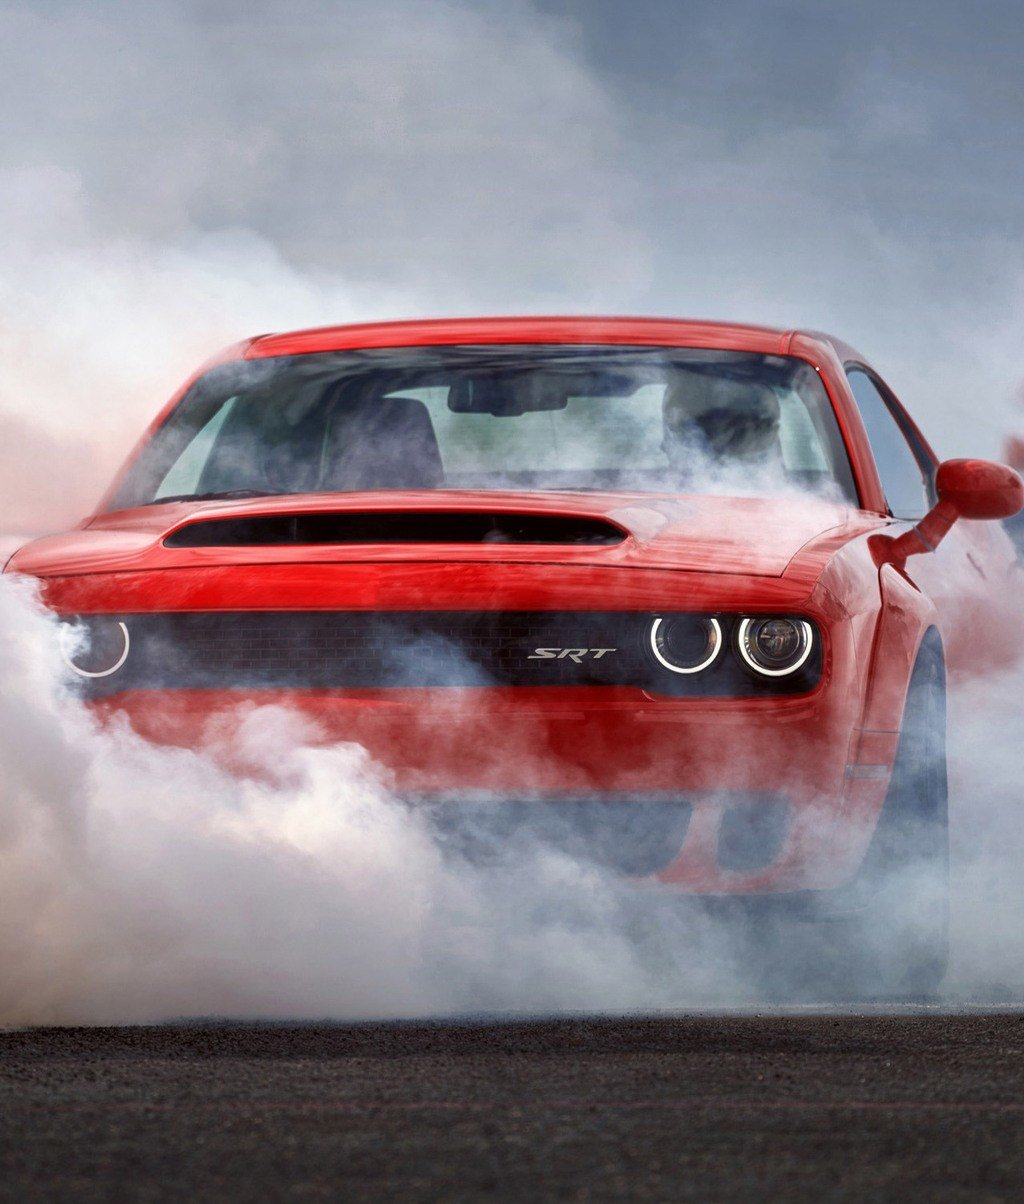 New Download 2018 Dodge Challenger Srt Demon Hd Hd Wallpaper On This Month